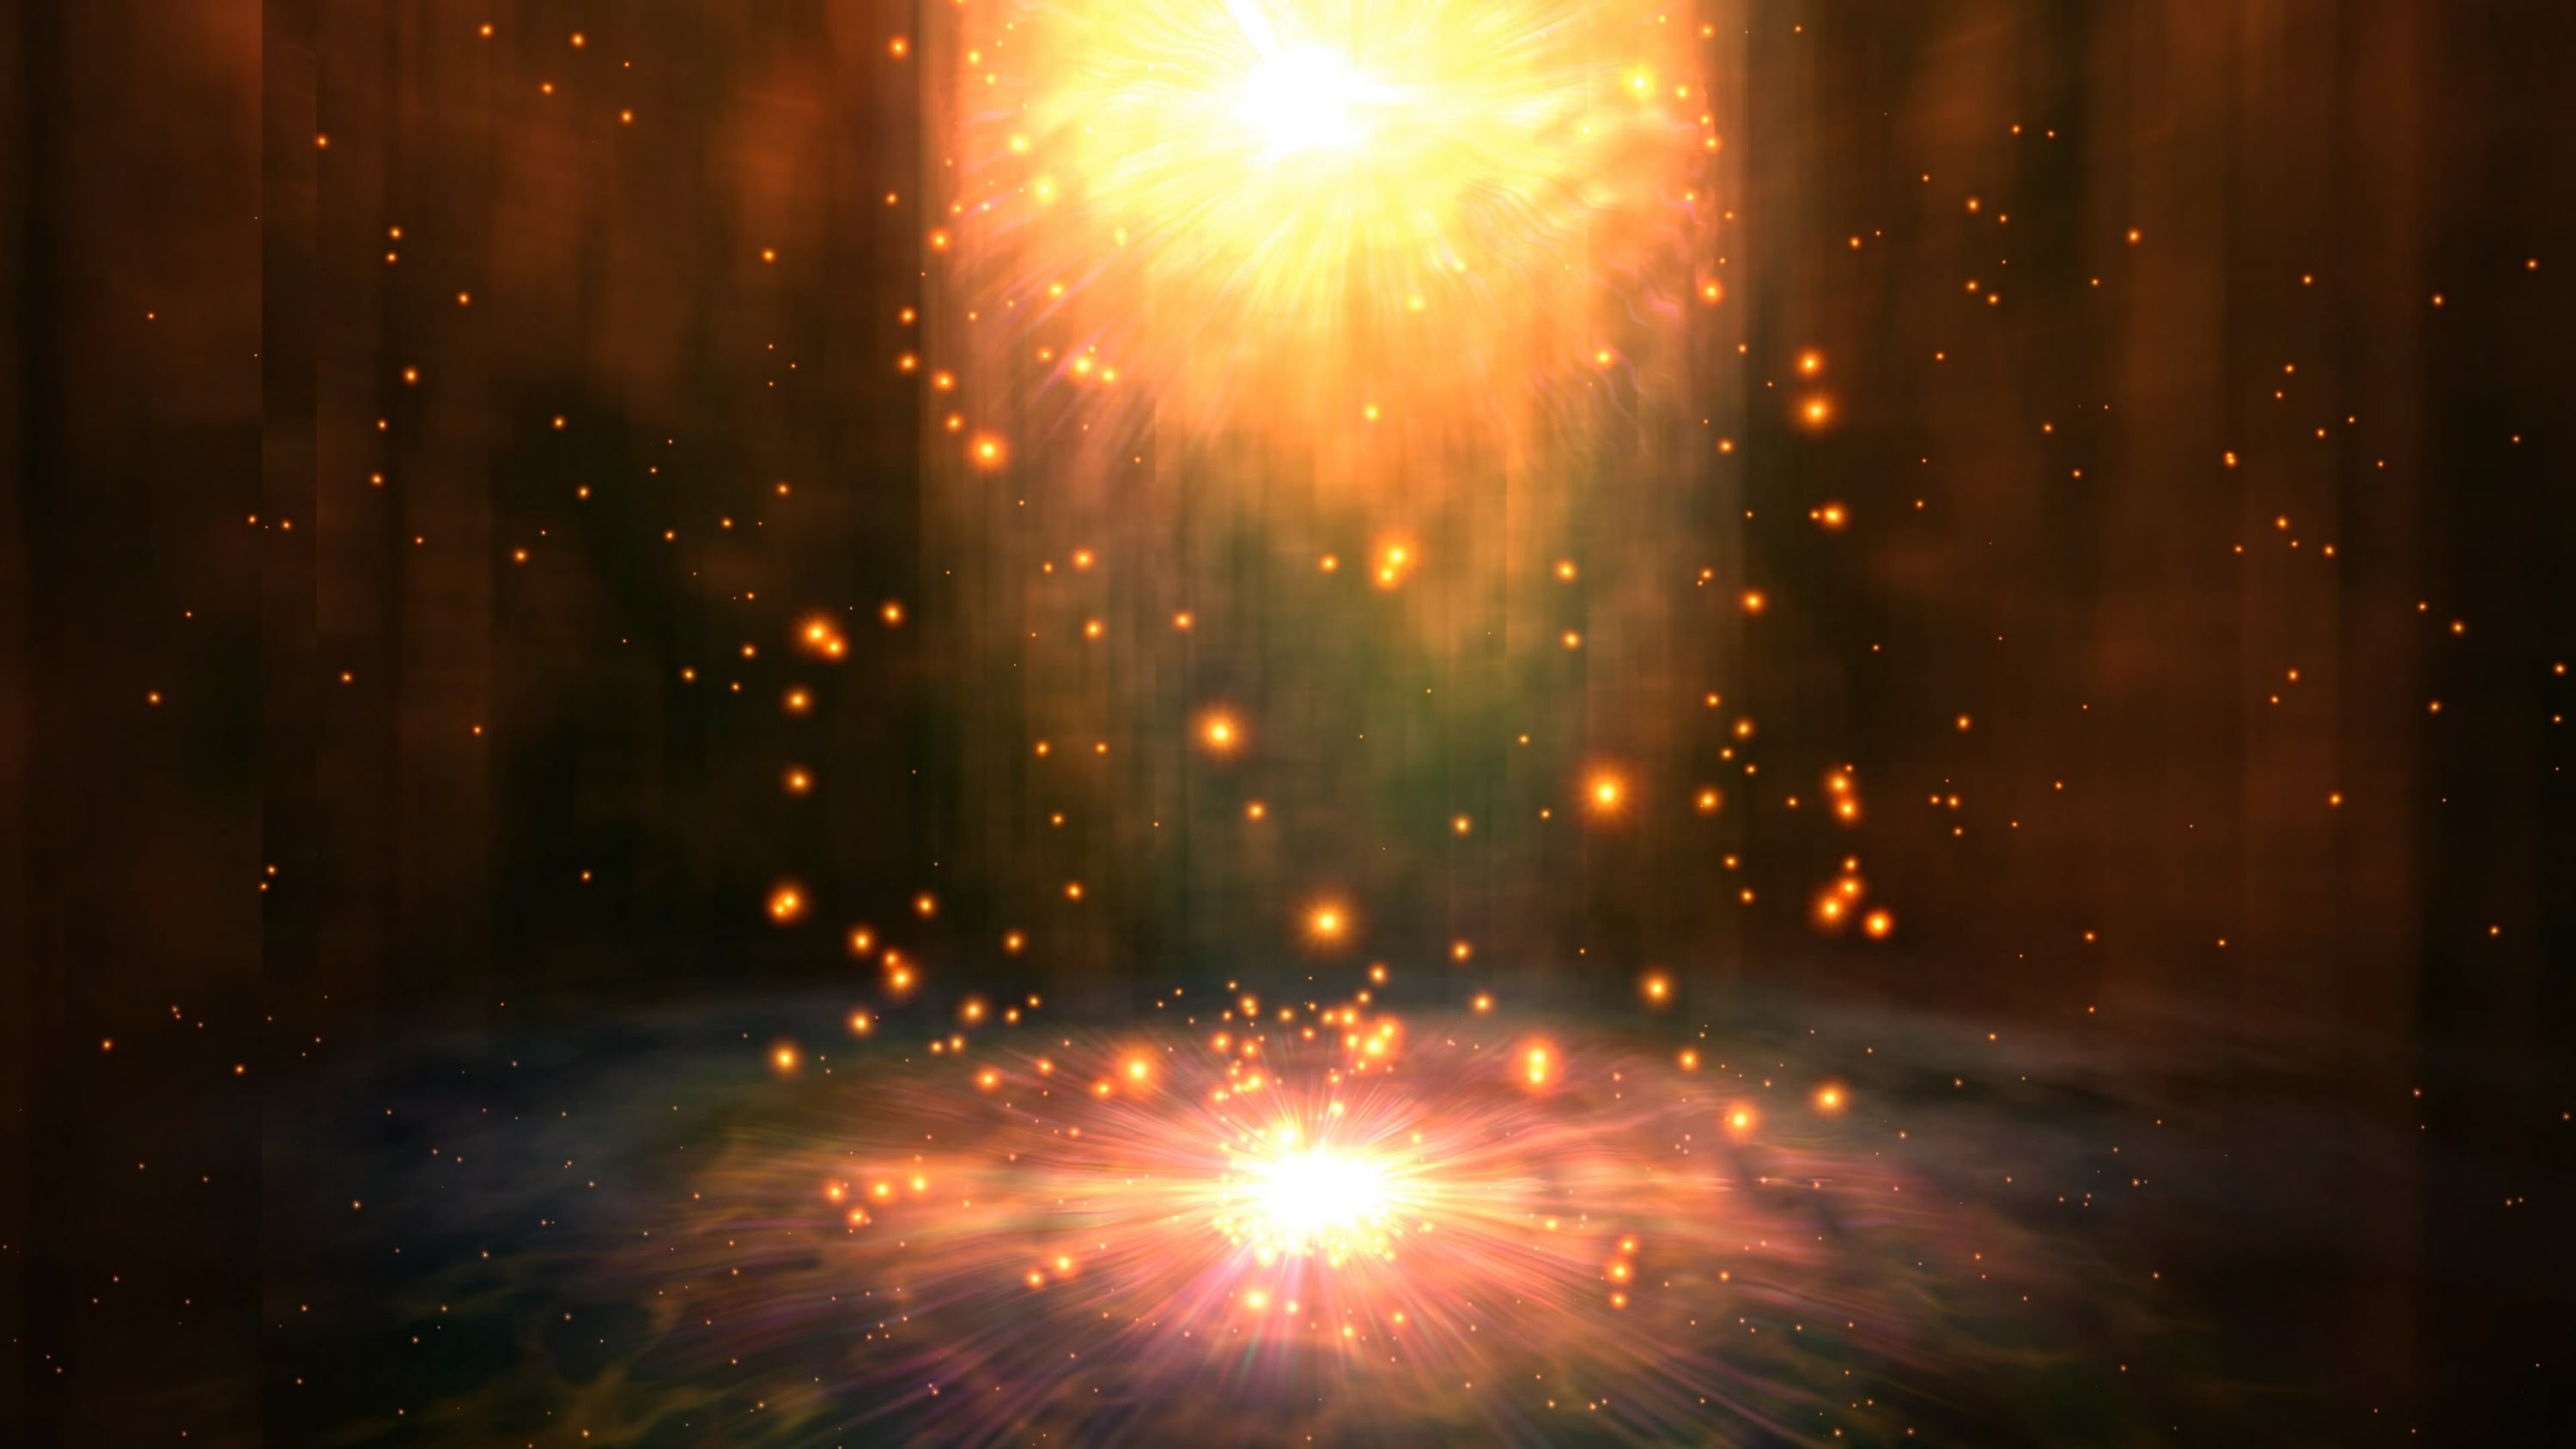 Res: 3000x1688, 4K Magical Ground 2160p Beautiful Animated Wallpaper HD Background video  effect 1080p AA VFX - YouTube